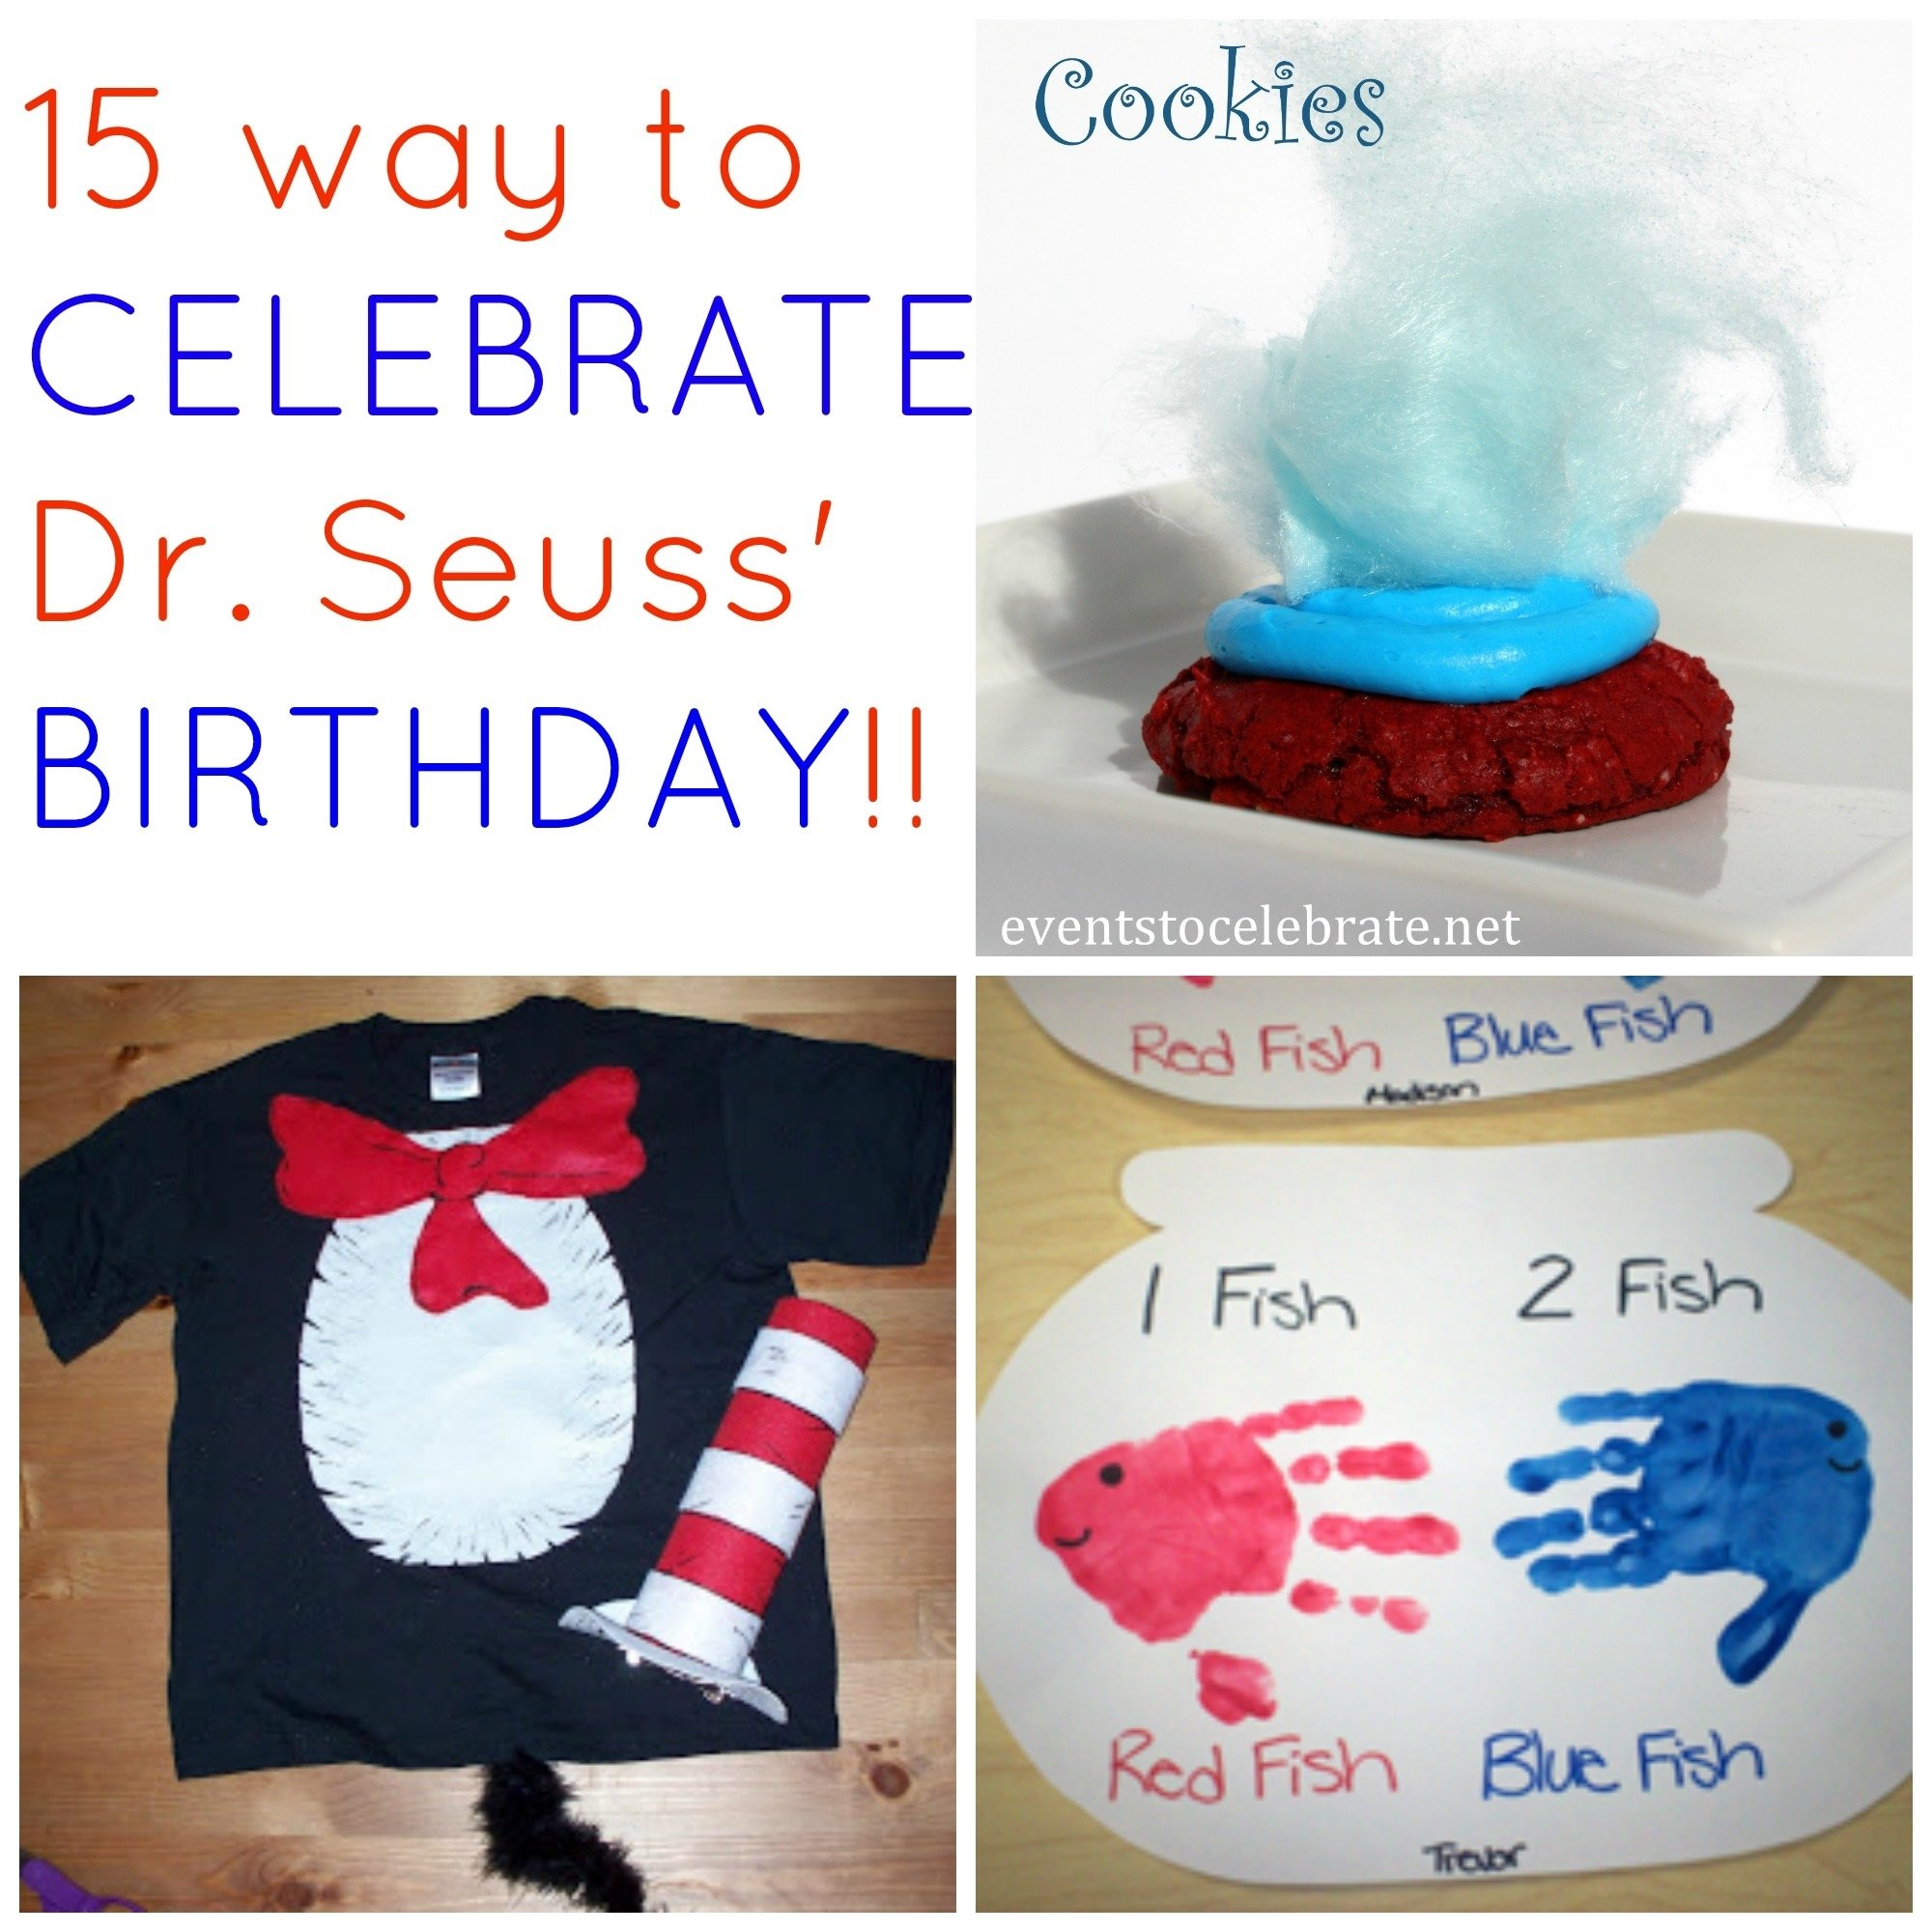 10 Stylish Ideas For Dr. Seuss Day fun party ideas archives page 2 of 4 simplistically sassy 2020